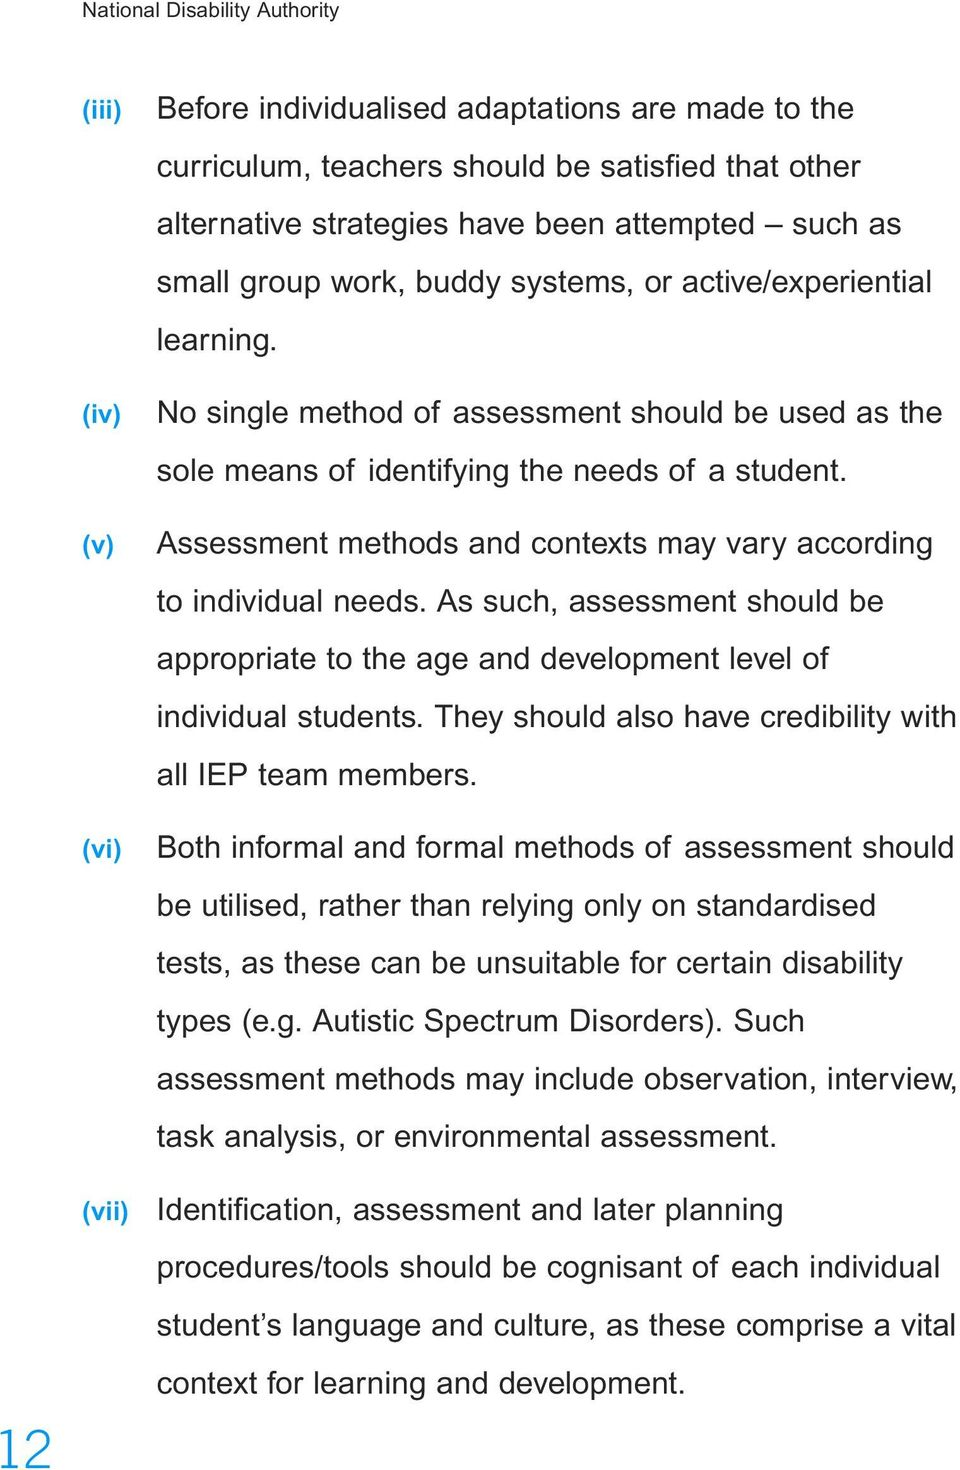 Assessment methods and contexts may vary according to individual needs. As such, assessment should be appropriate to the age and development level of individual students.